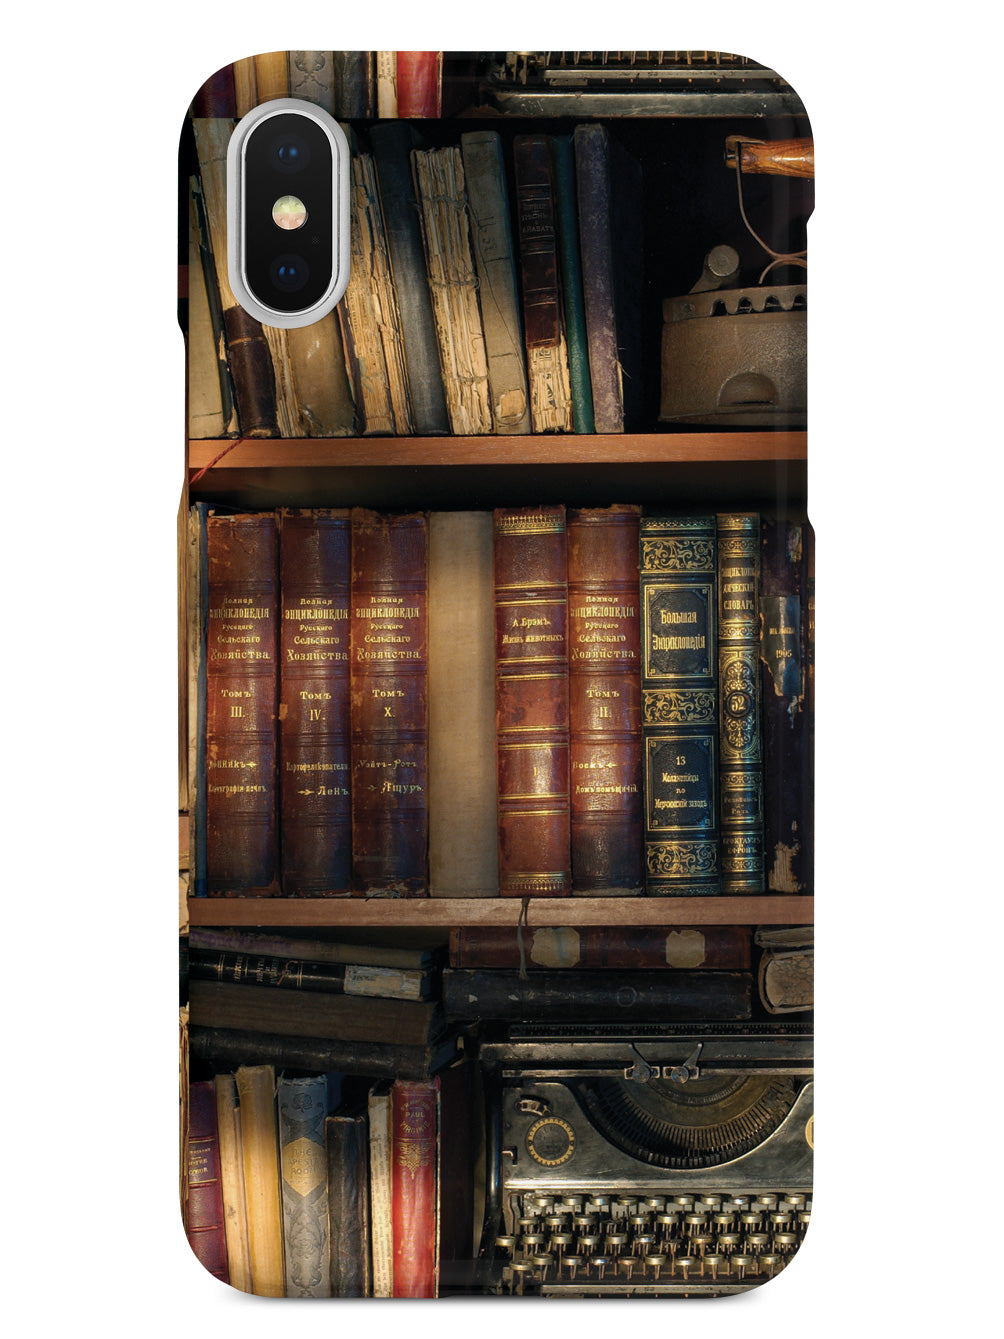 image stock photo bpyxew images photos bookshelf wooden vintage alamy